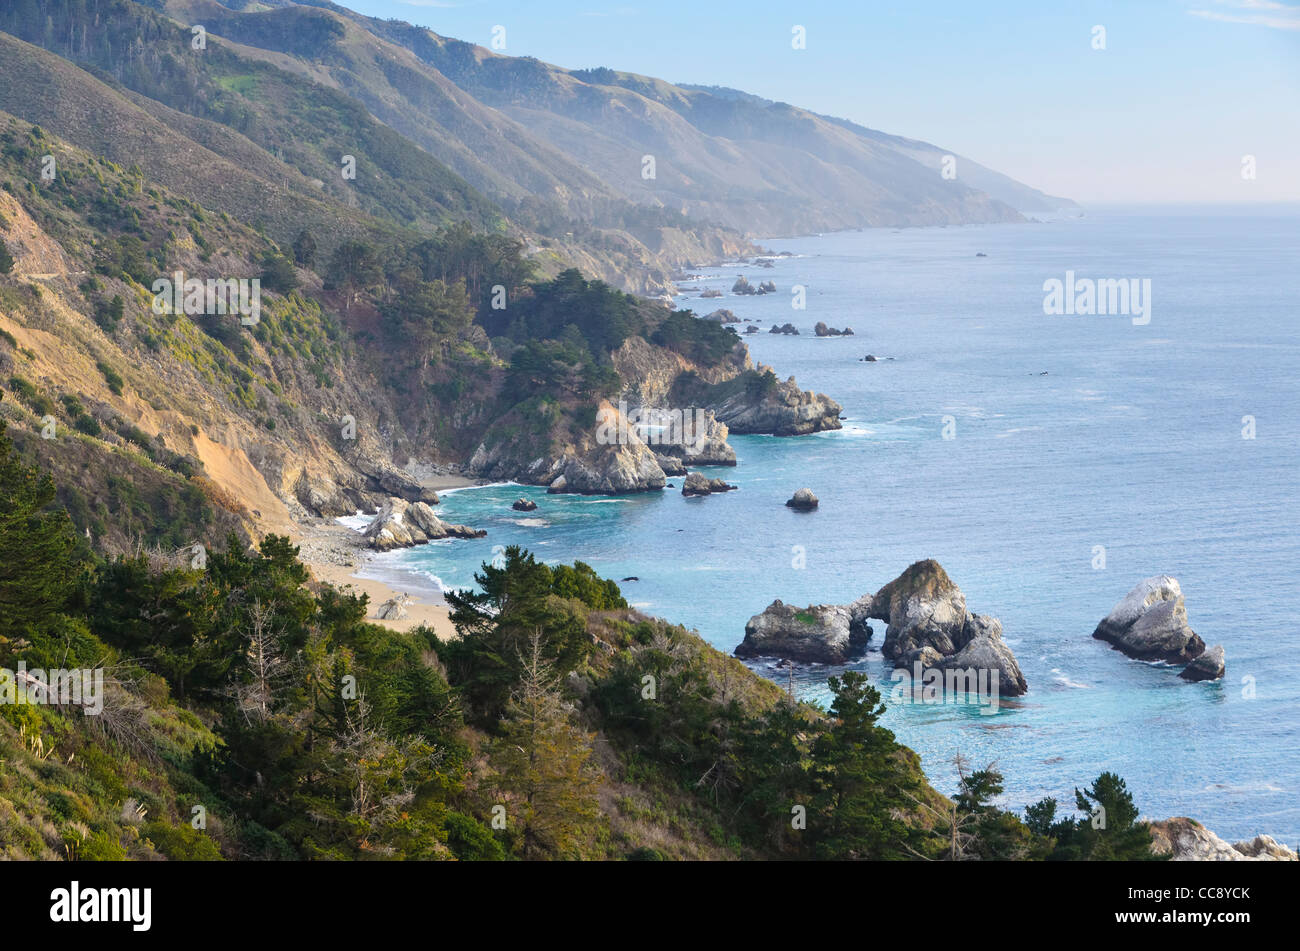 Central Coast, Big Sur near Monterey, California - Stock Image